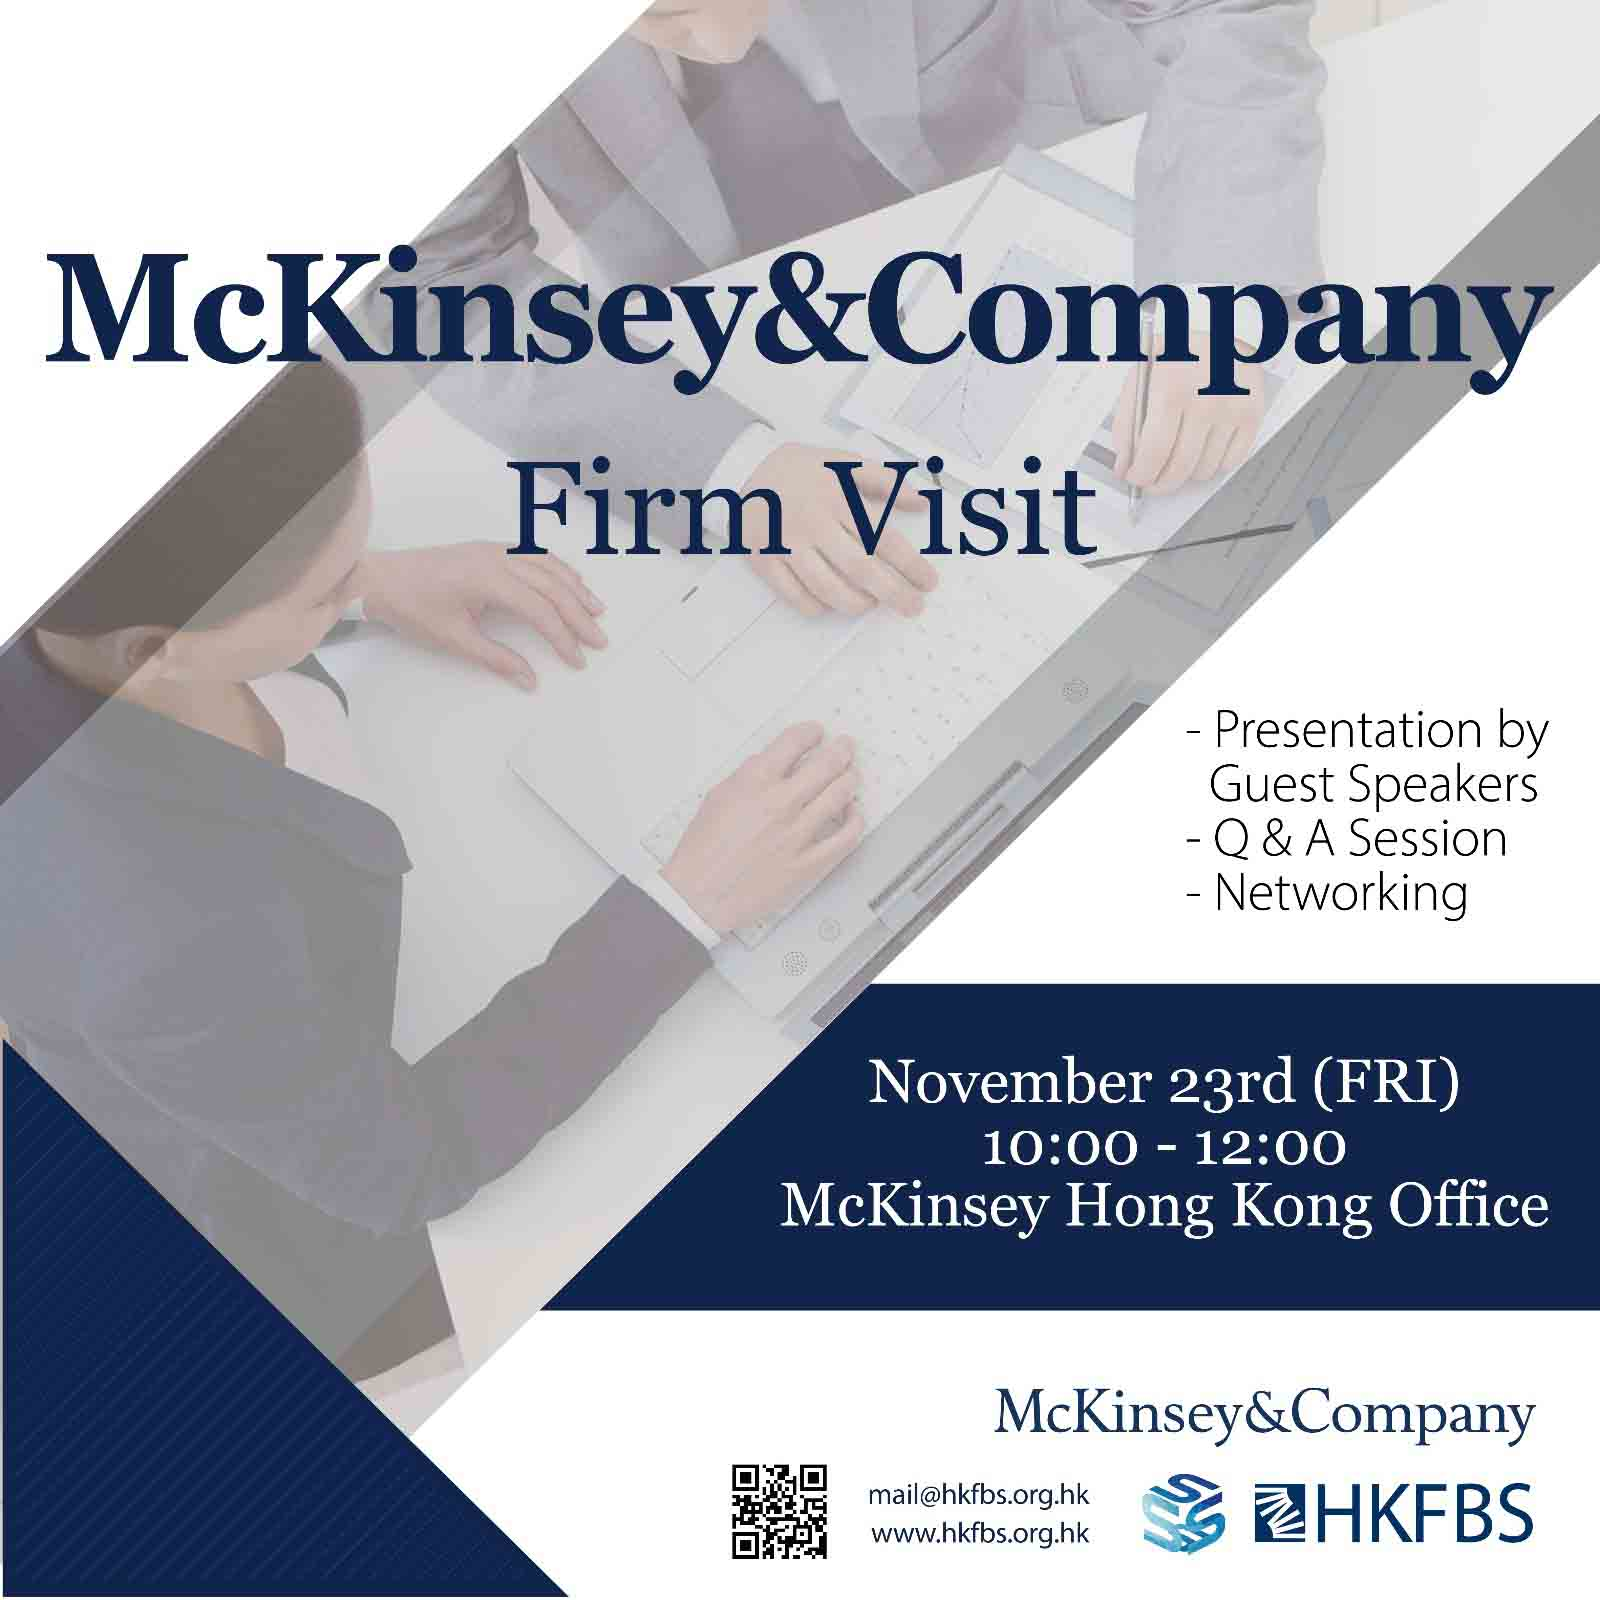 Firm Visit to McKinsey & Company